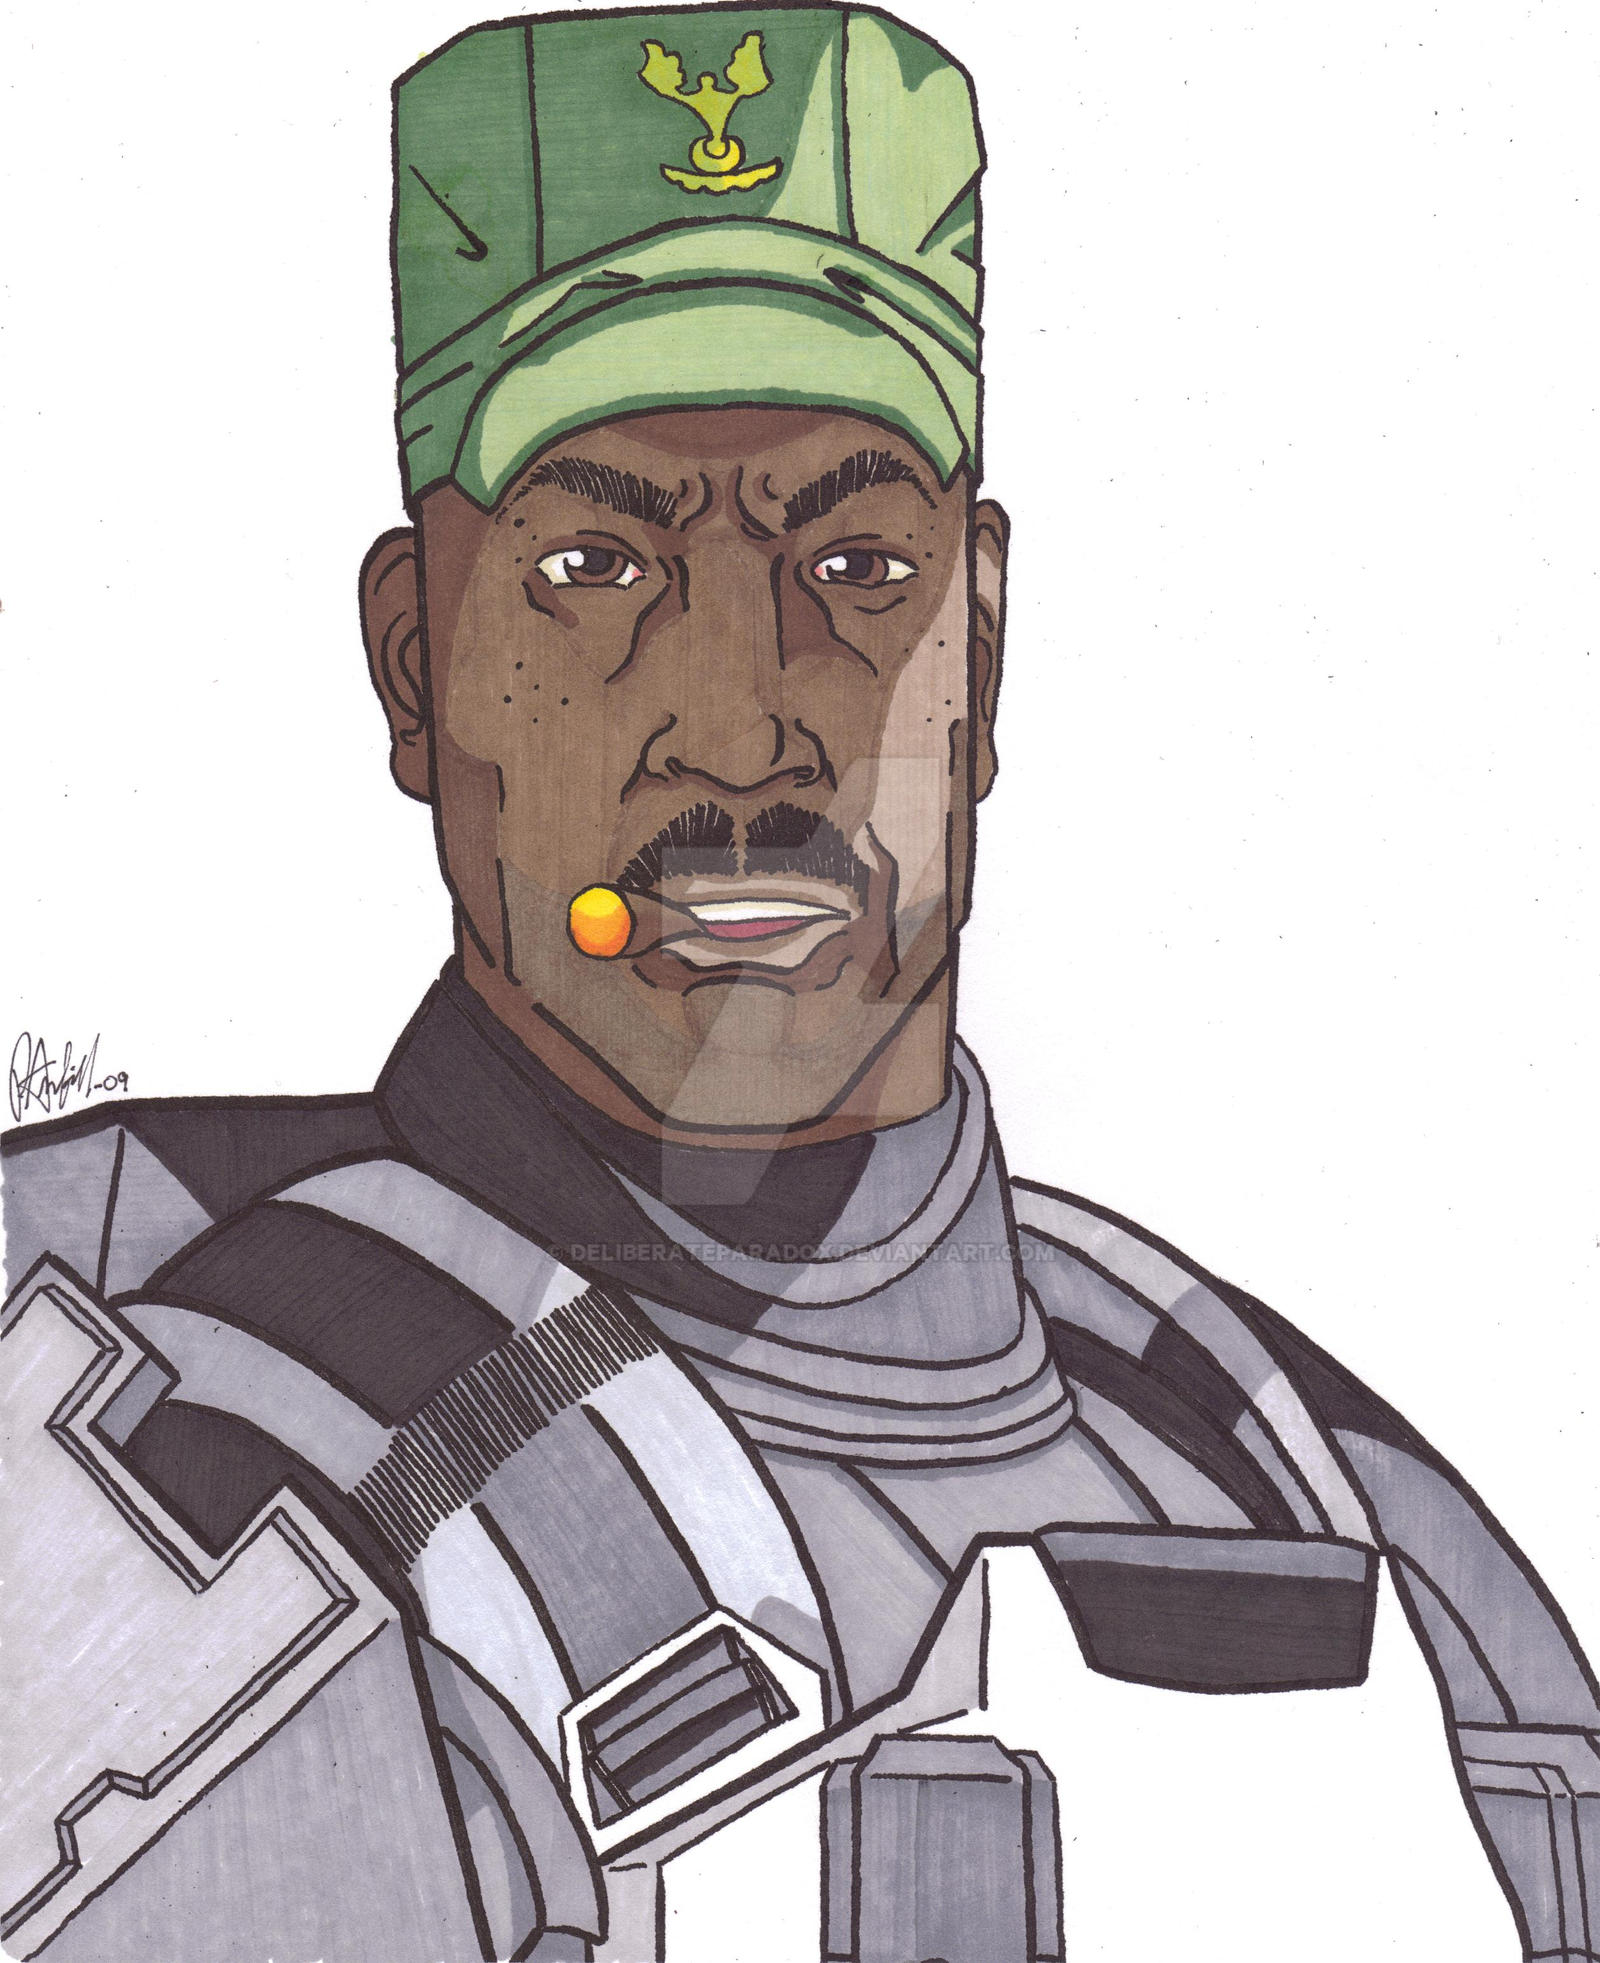 Sgt Avery Johnson by DeliberateParadox on DeviantArt